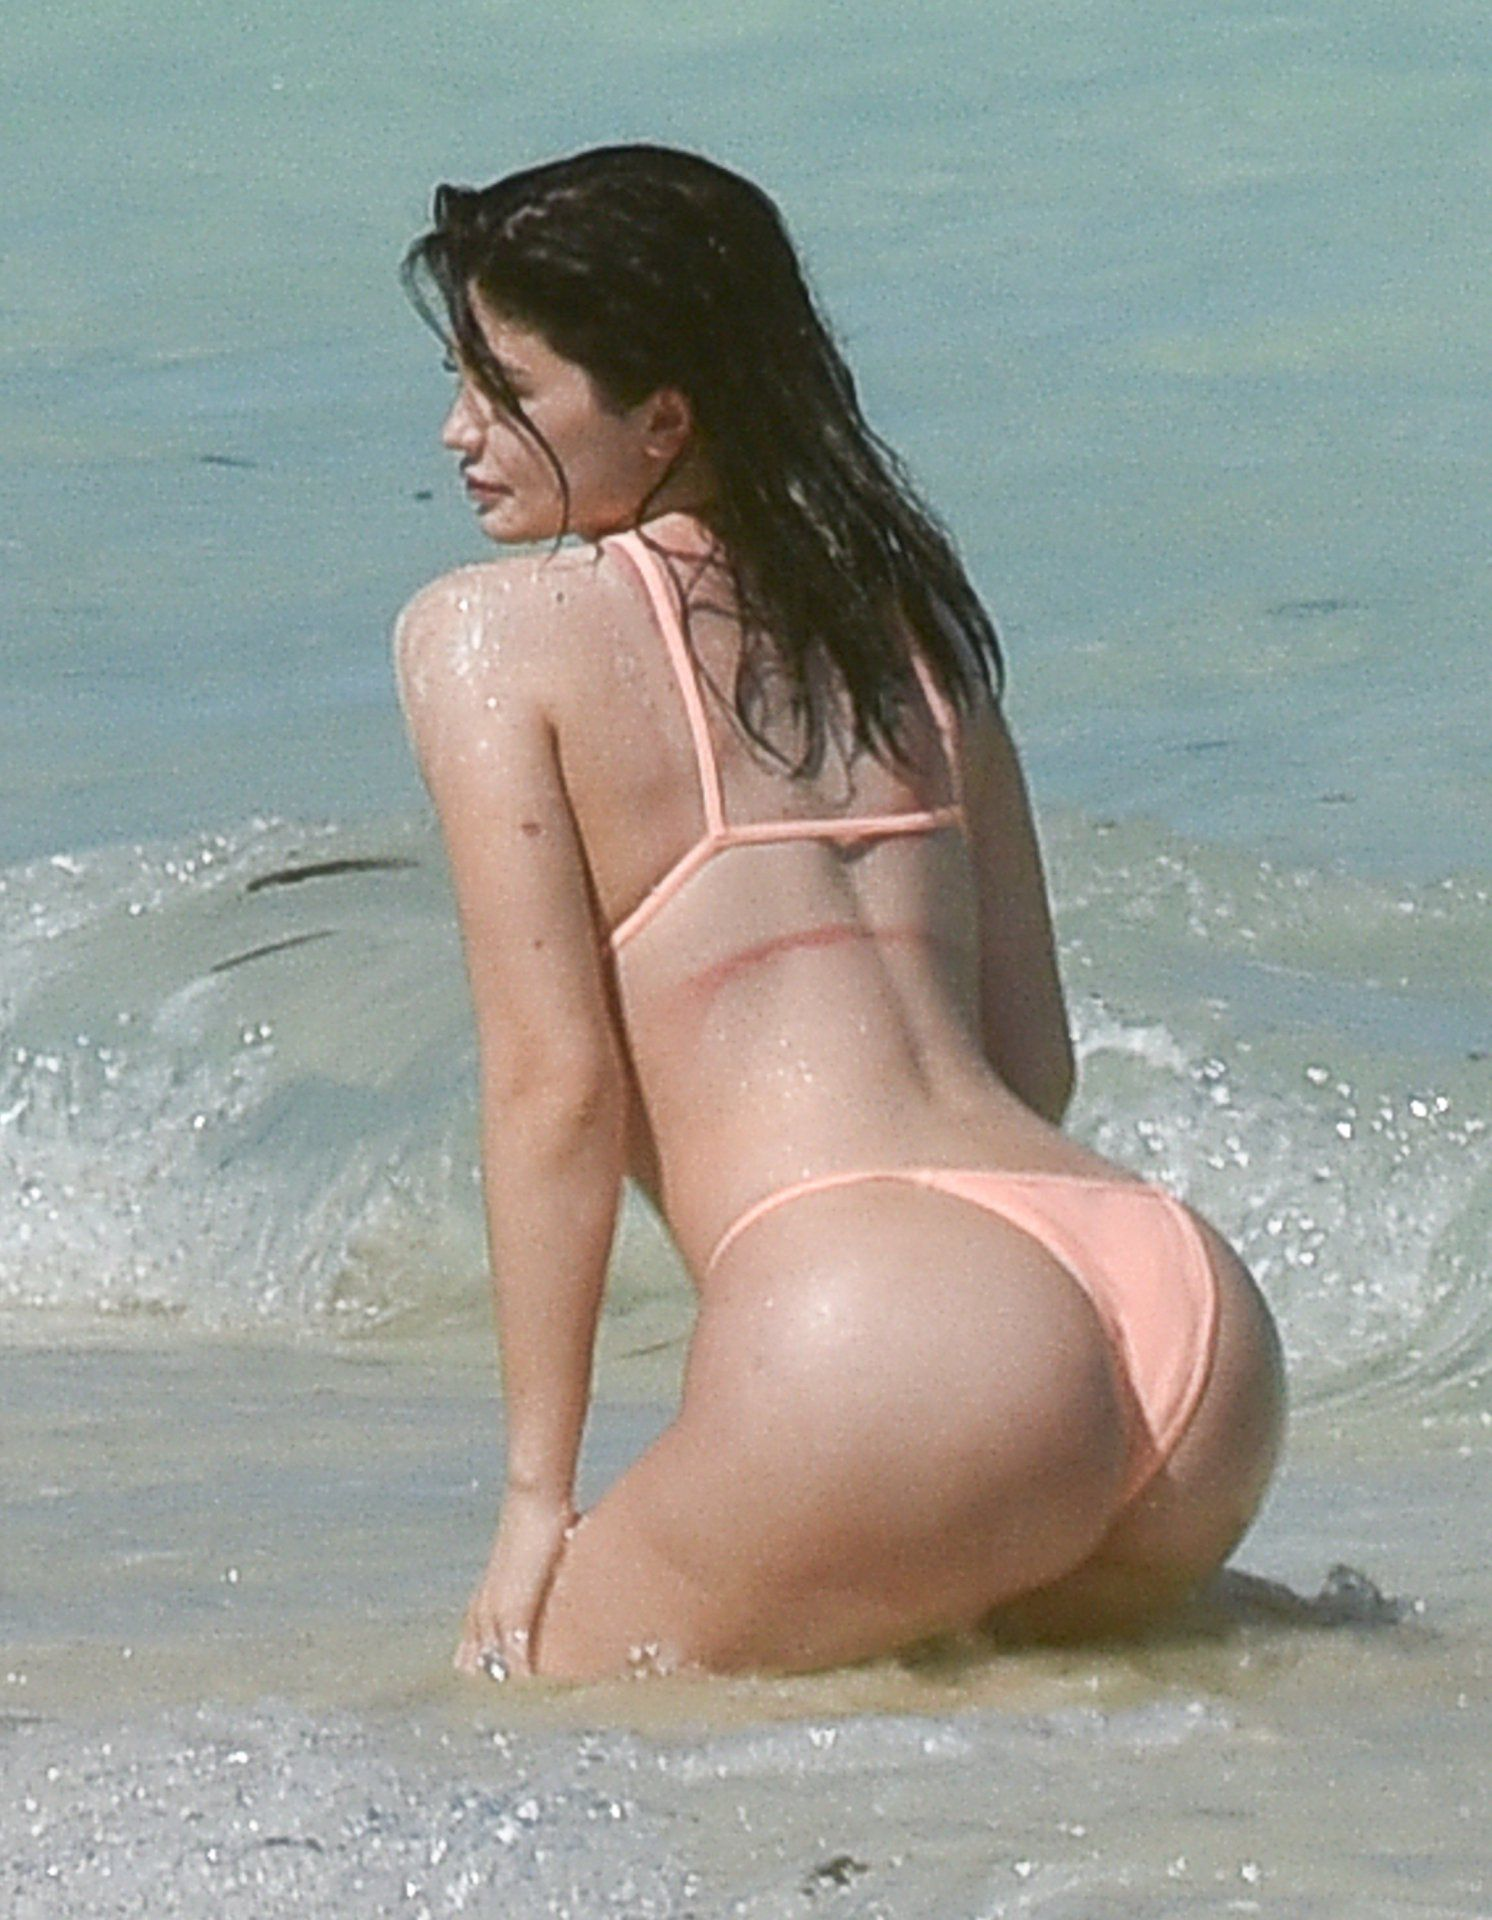 photo Kendall jenner kylie jenner nude